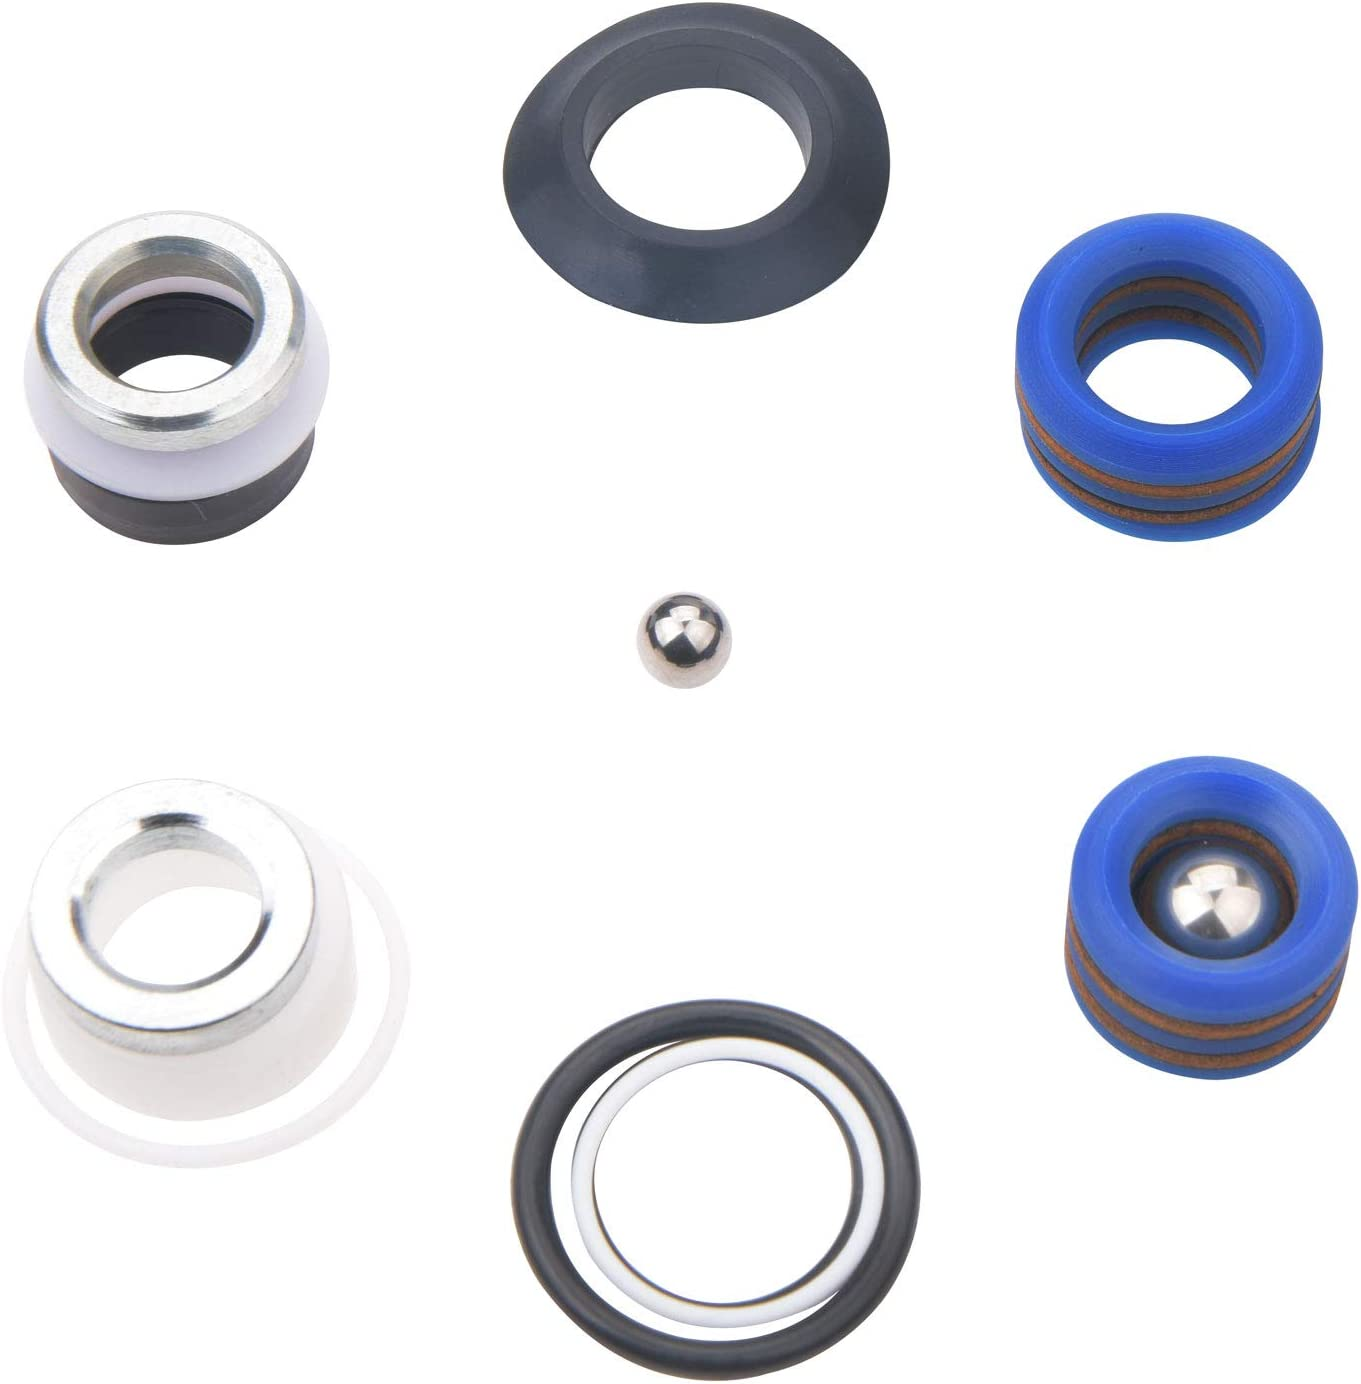 GDHXW 244194 Pump Repair Packing Kit for Graco Ultra Max II 390 395 490 495 595 LineLazer 3400 Aftermarket Airless Paint Sprayer